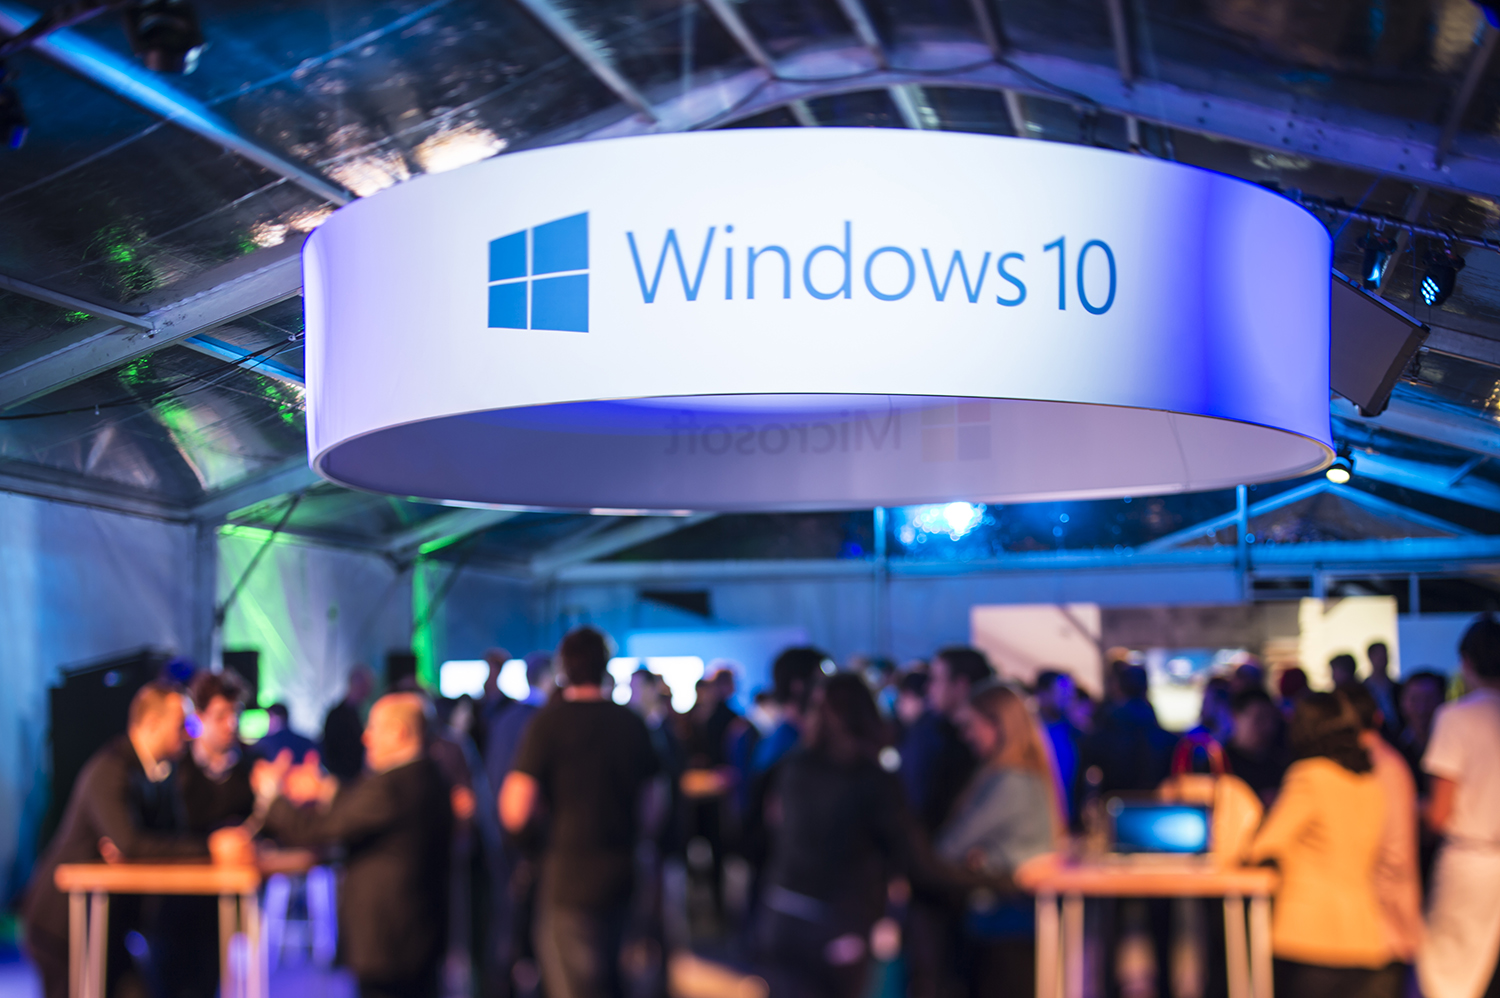 windows-10-free-upgrade-ends-july-29